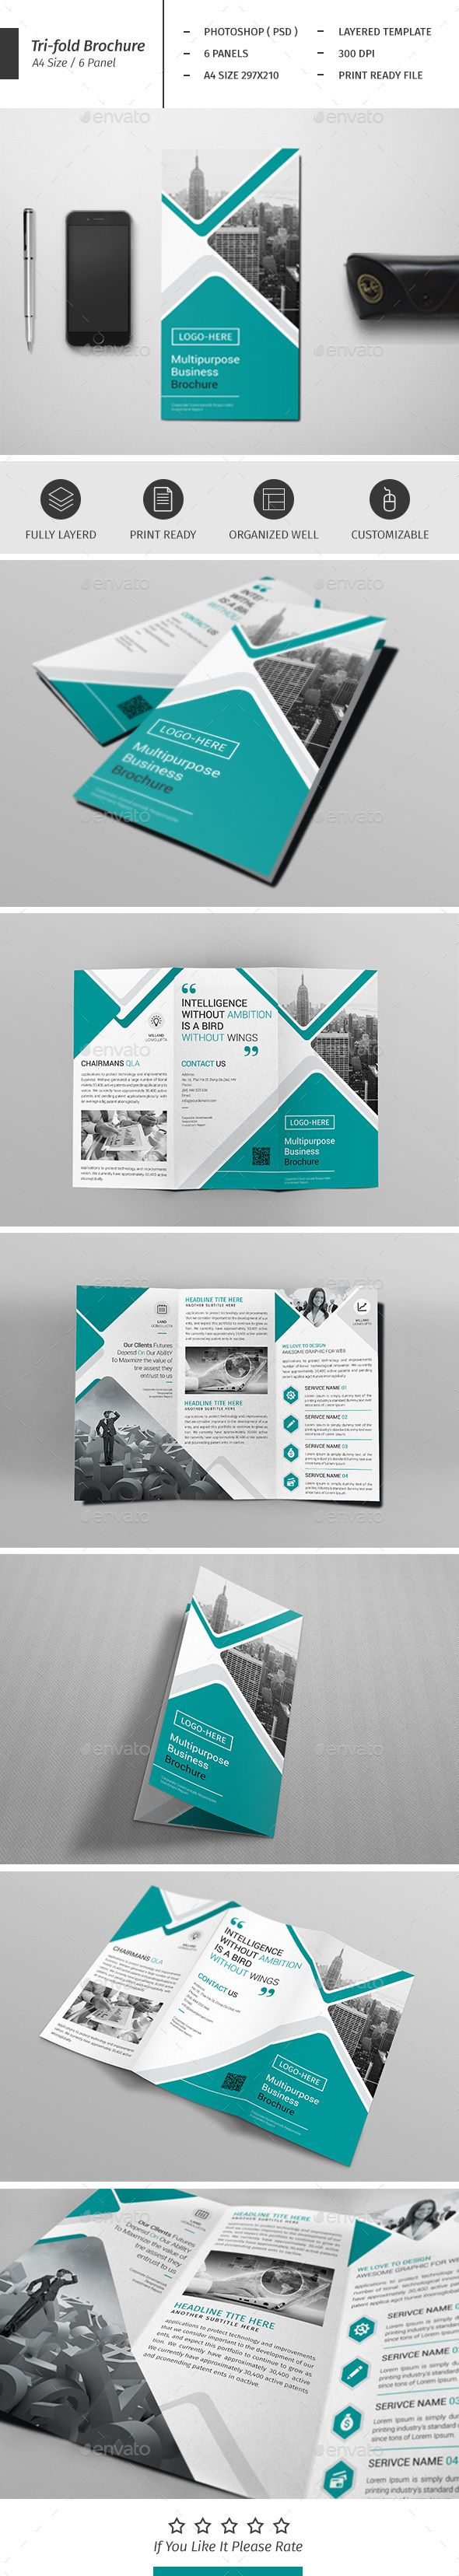 A4 Corporate Business Flyer Template PSD. Download here: http://graphicriver.net/item/a4-corporate-business-flyer-template-vol-03/15460366?ref=ksioks